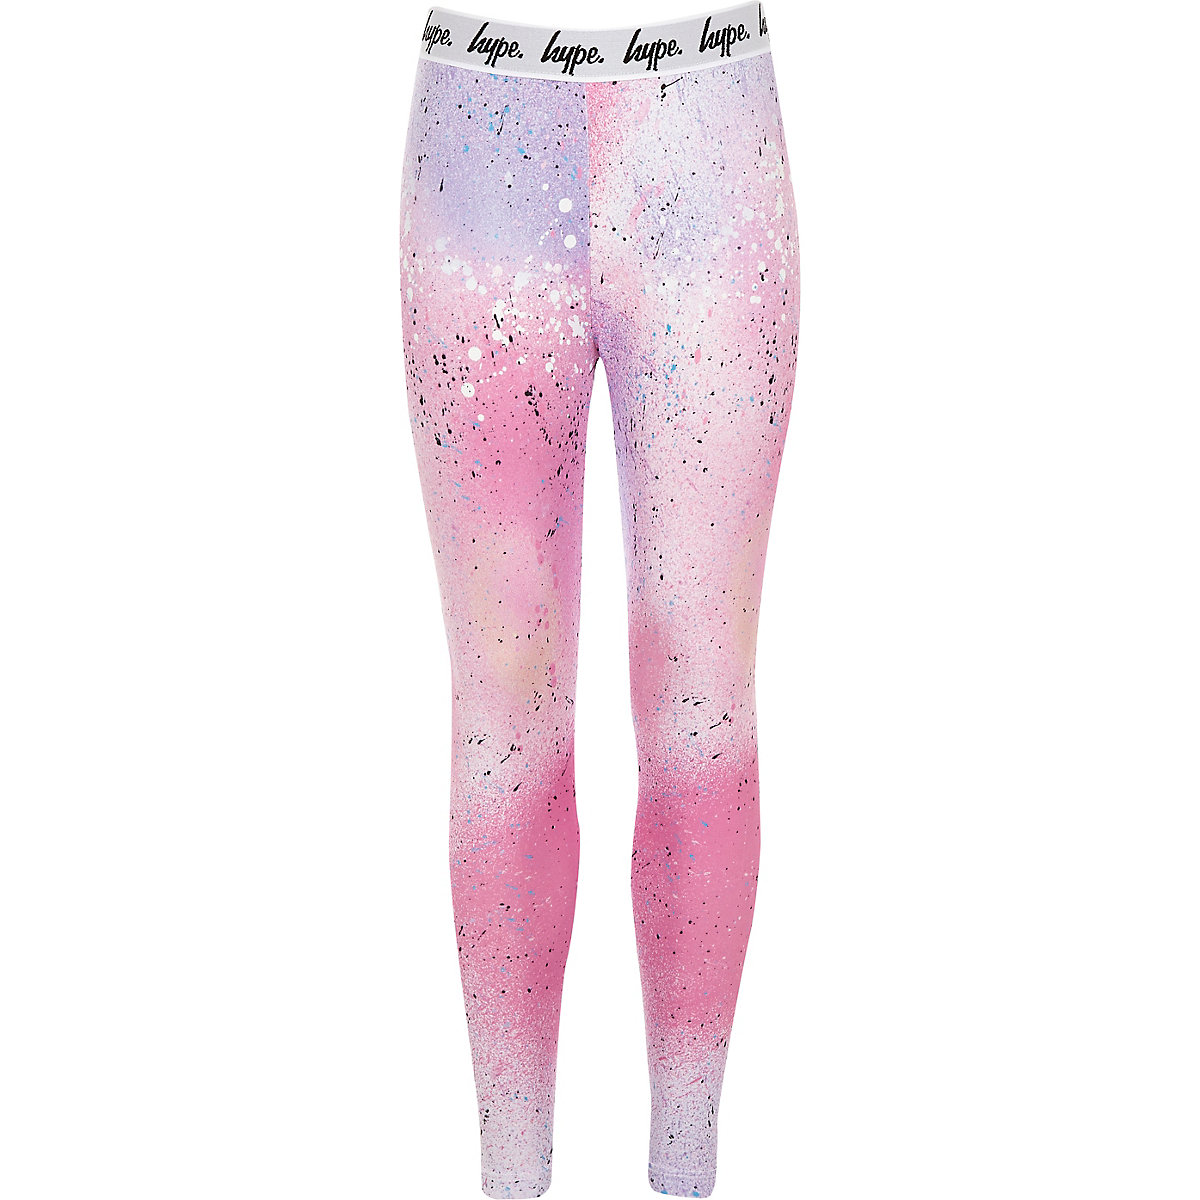 Girls Hype pink spray speckled leggings